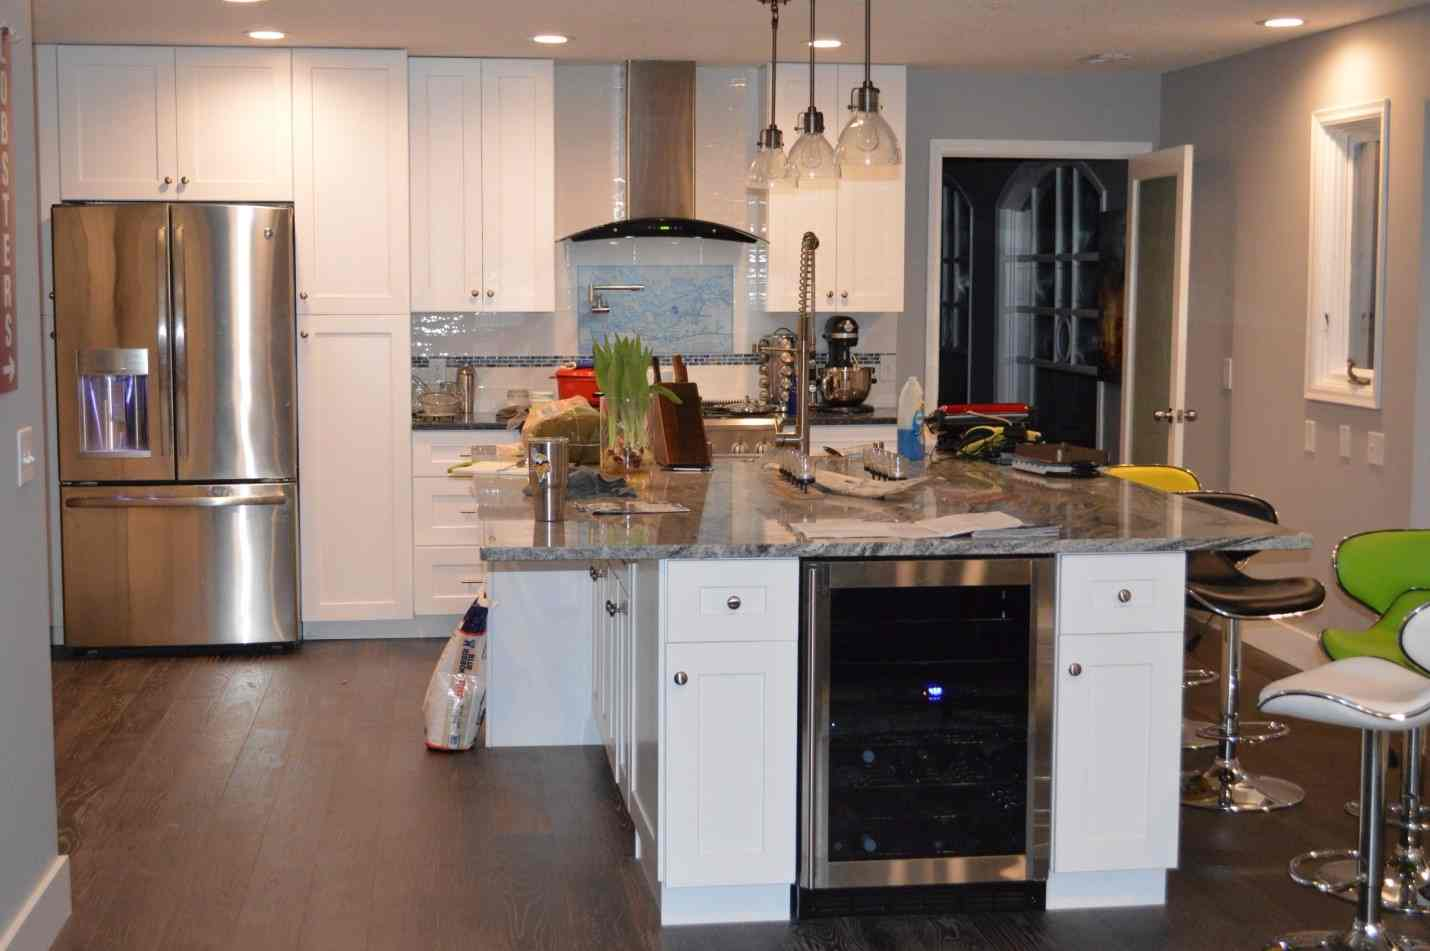 5 Stunning Traditional Kitchen Decor Ideas for Your New Home on Traditional Kitchen Decor  id=92020